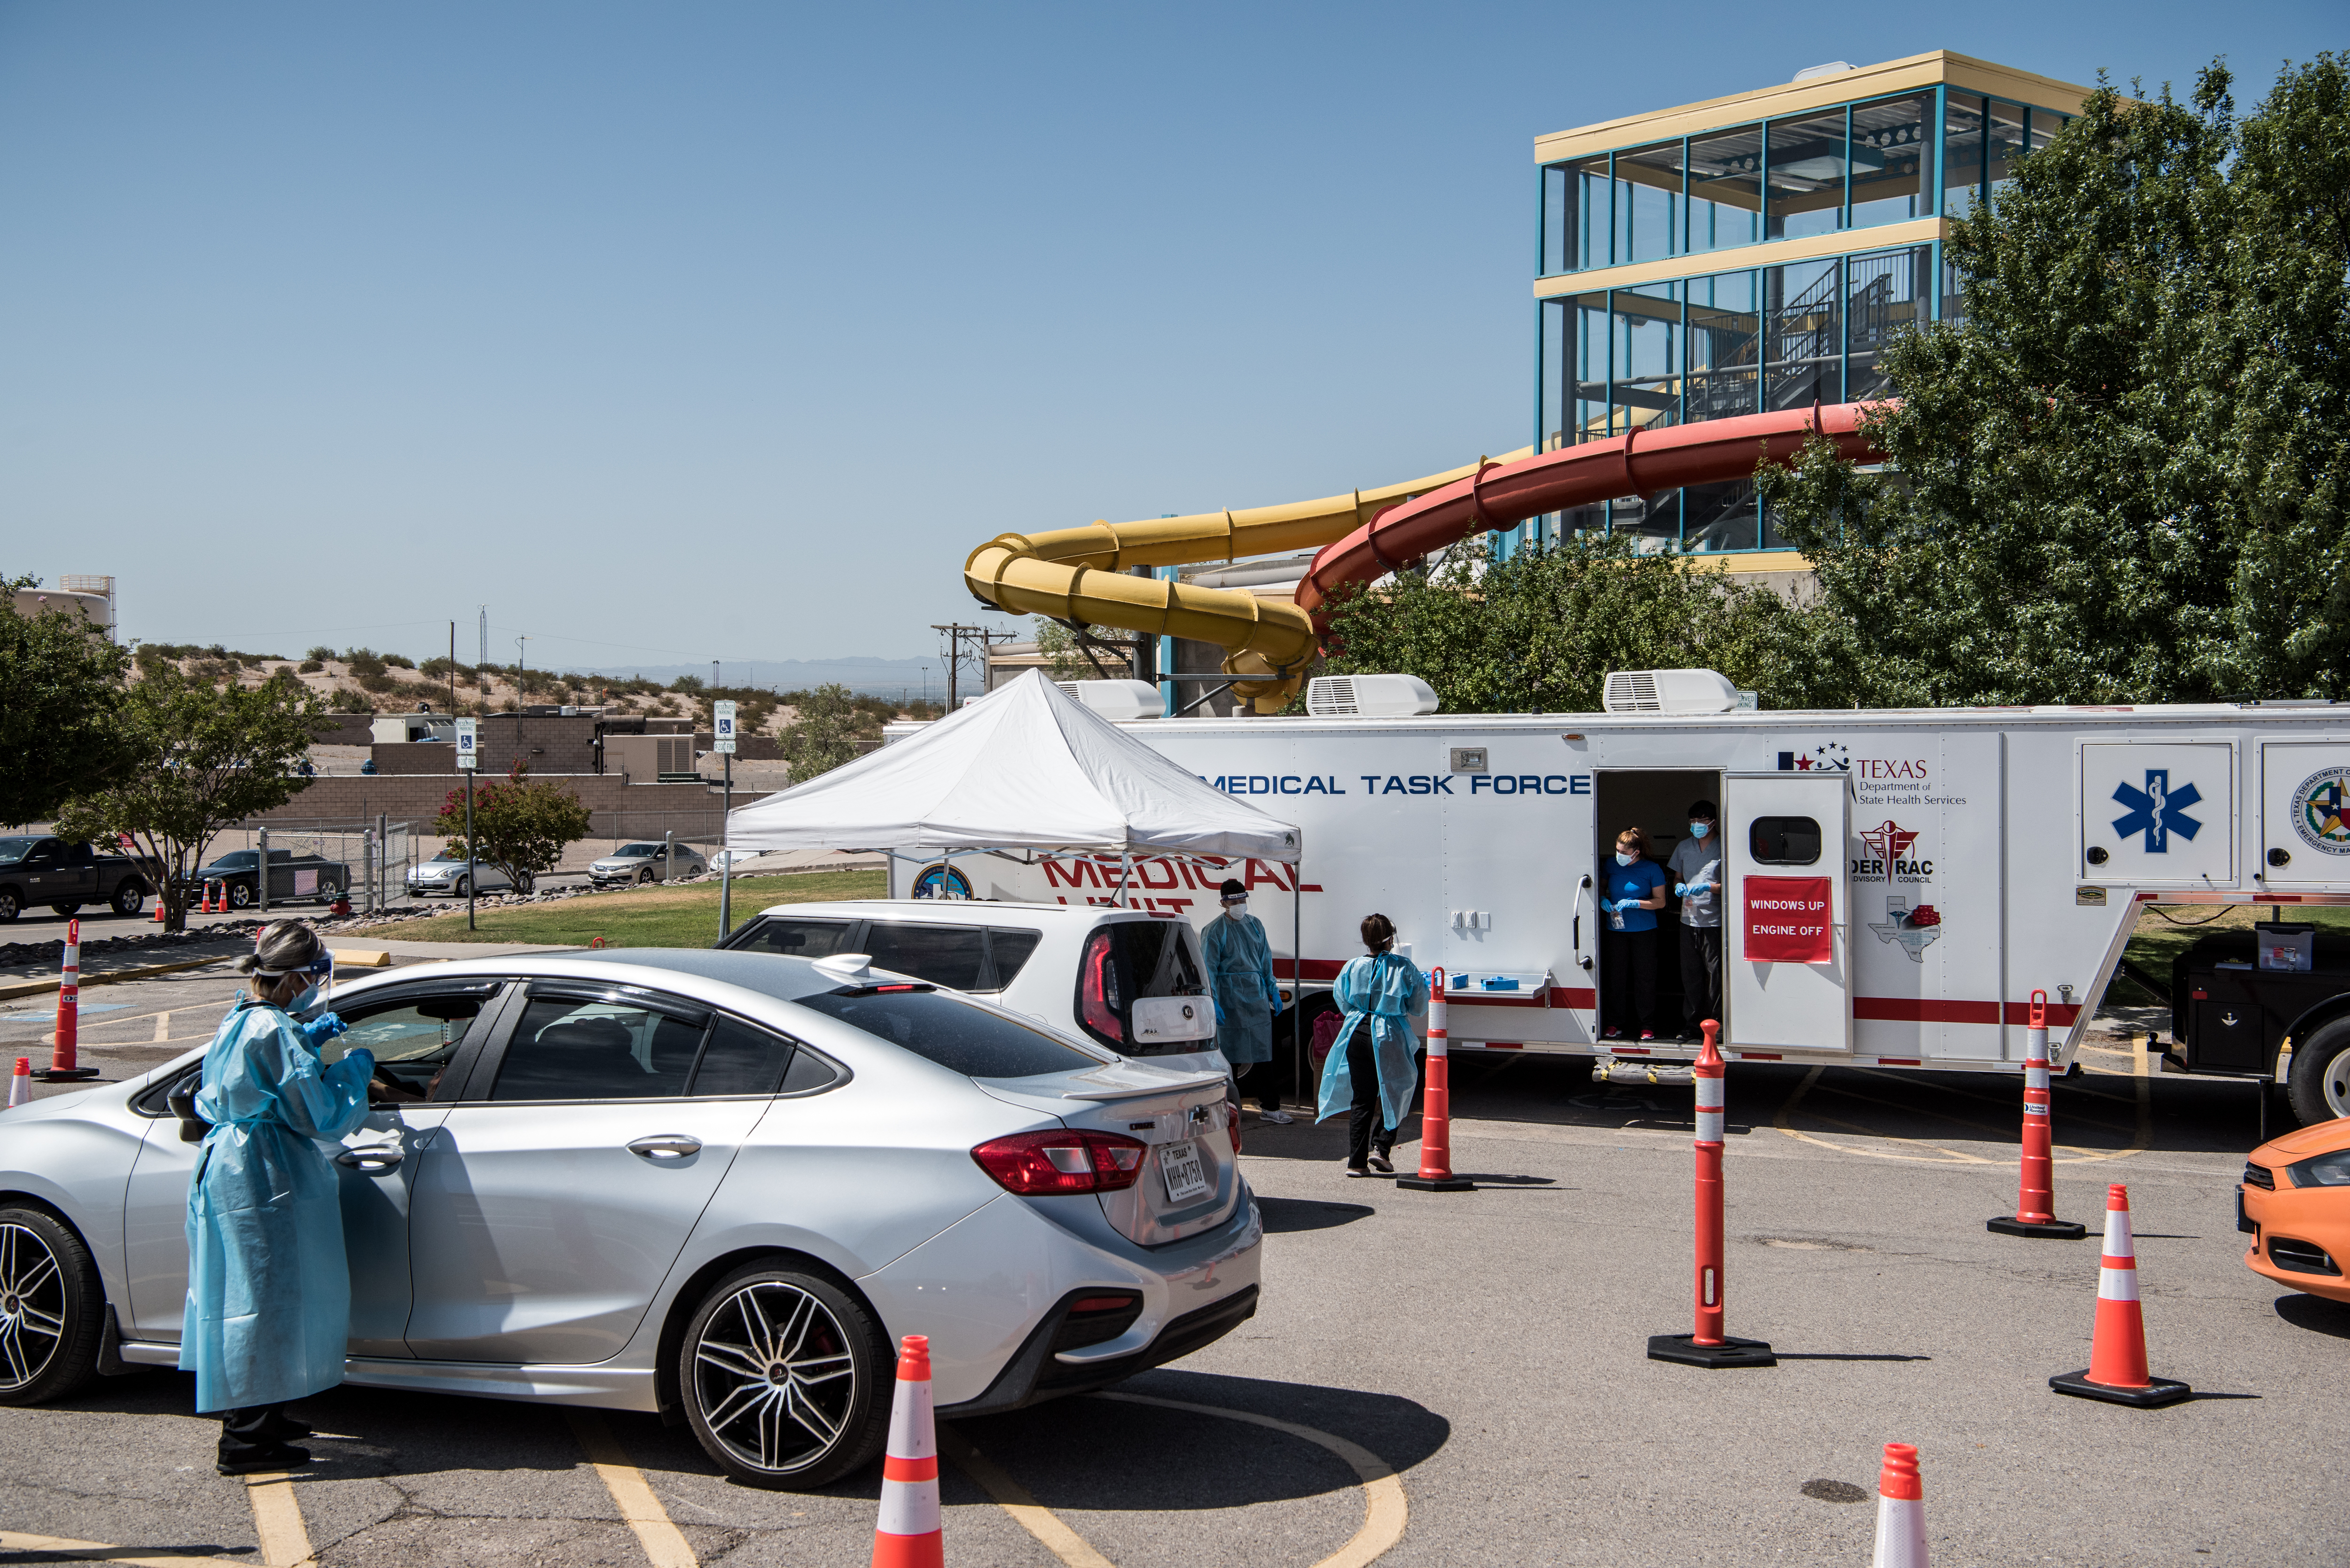 Nurses work on July 21 at a drive-thru Covid-19 testing site in El Paso, Texas.